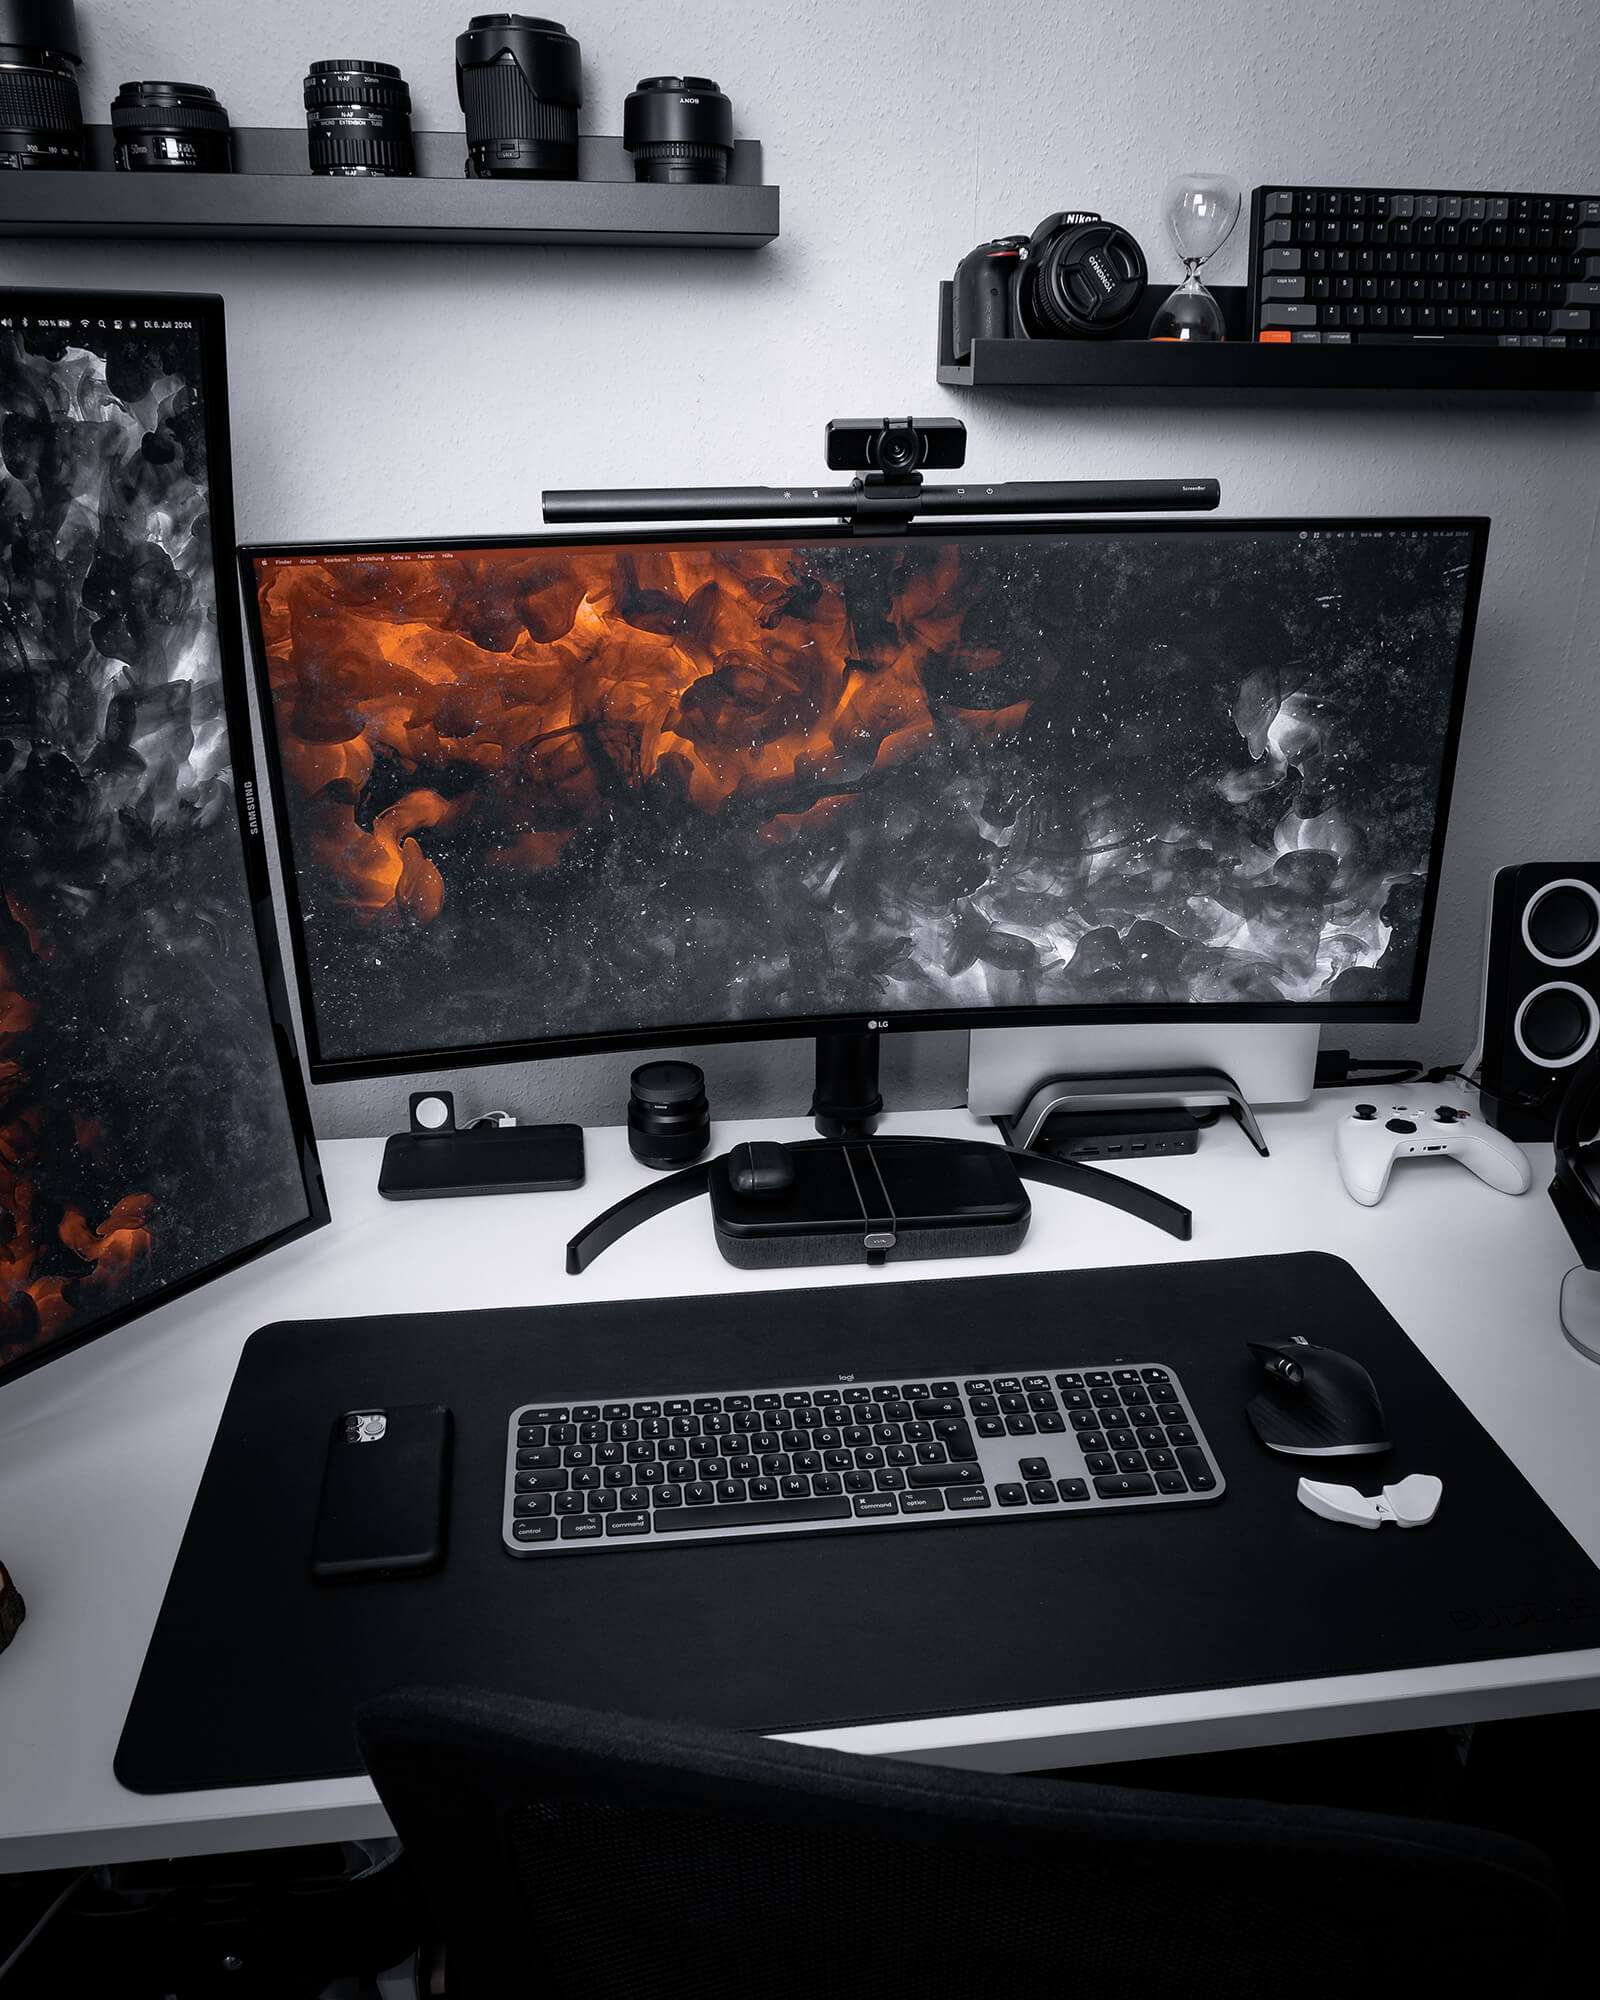 Uli uses the iVANKY USB-C hub to connect his MacBook Pro to dual monitors